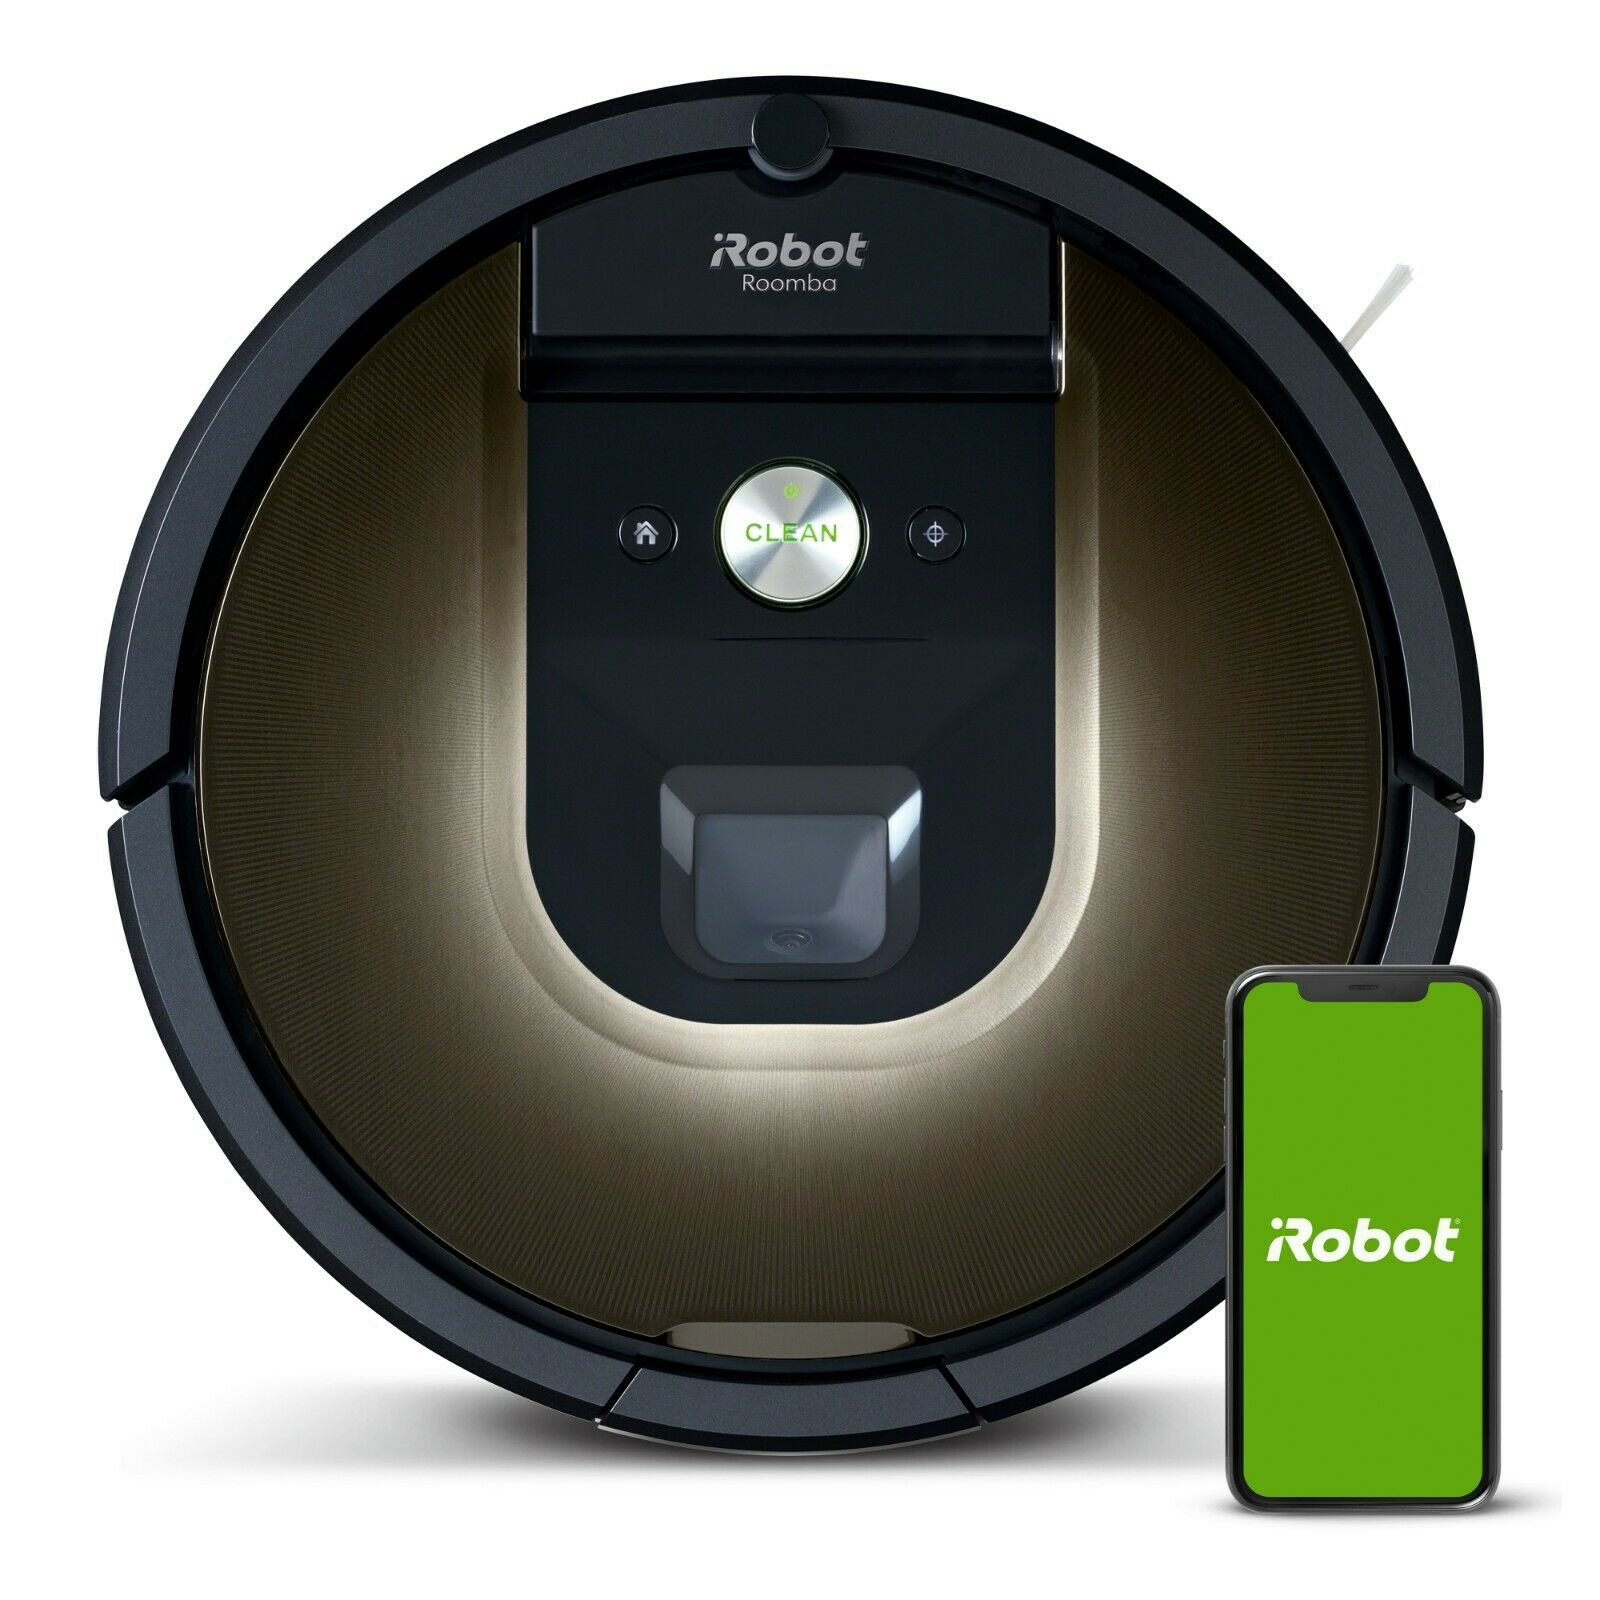 irobot-roomba-980-vacuum-cleaning-robot-manufacturer-certified-refurbished